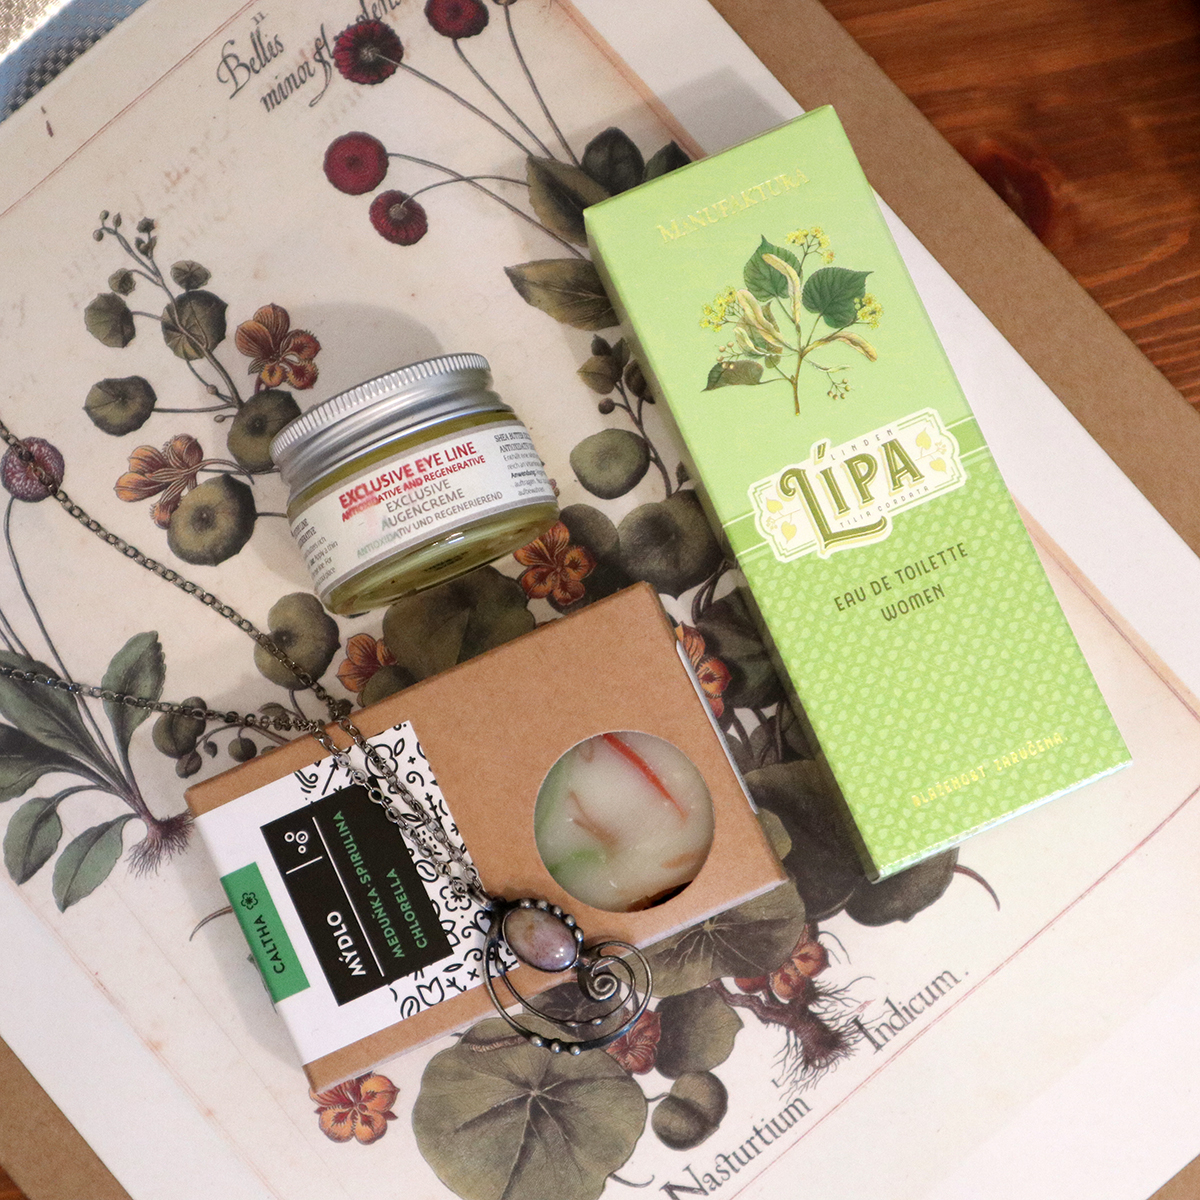 Naturkosmetik Beauty Travel in Prag: Manufaktura, Botanics, Schmuck